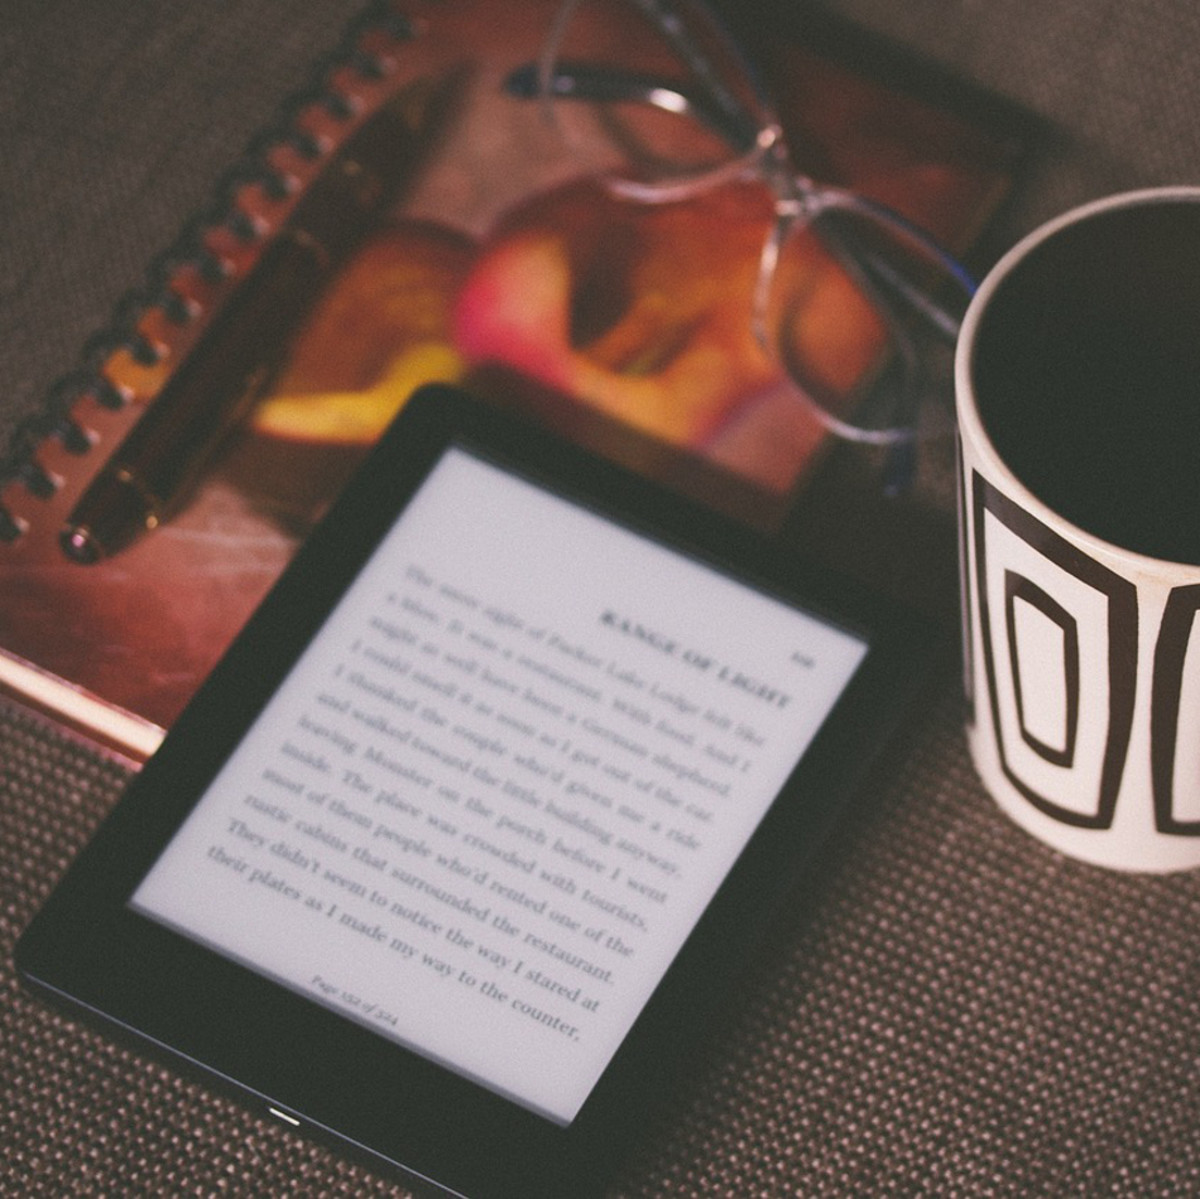 Kindle reading device mug